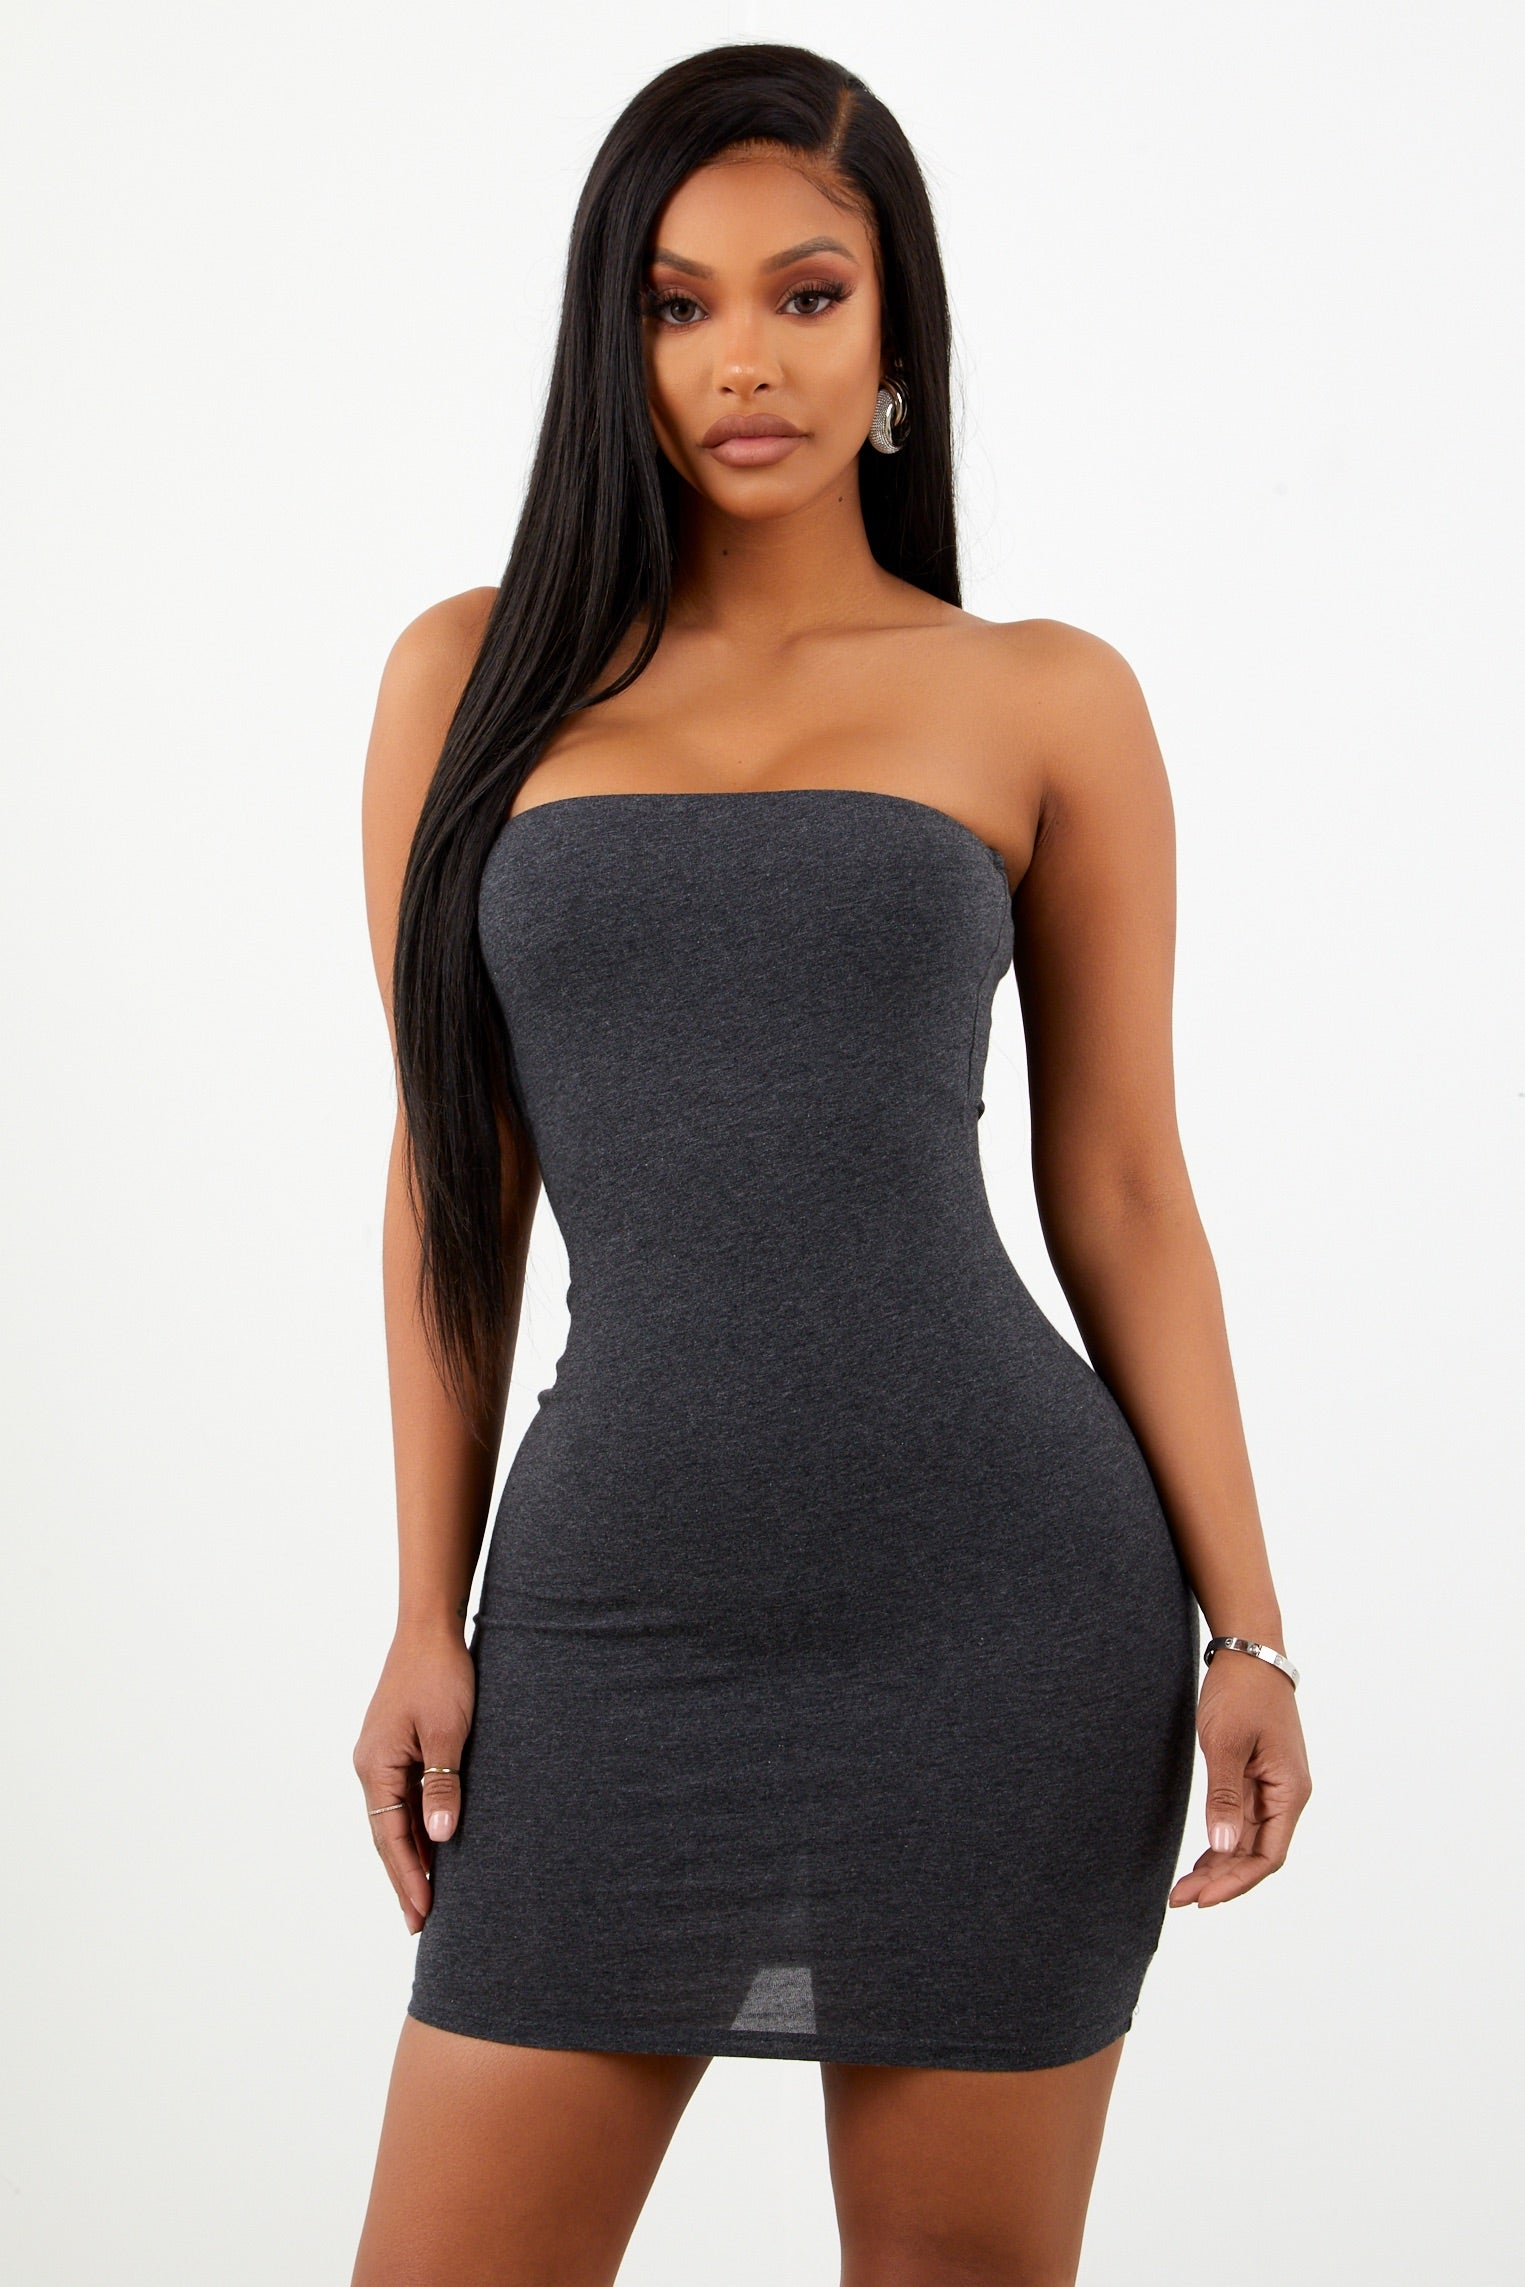 Grey Basic Strapless Dress